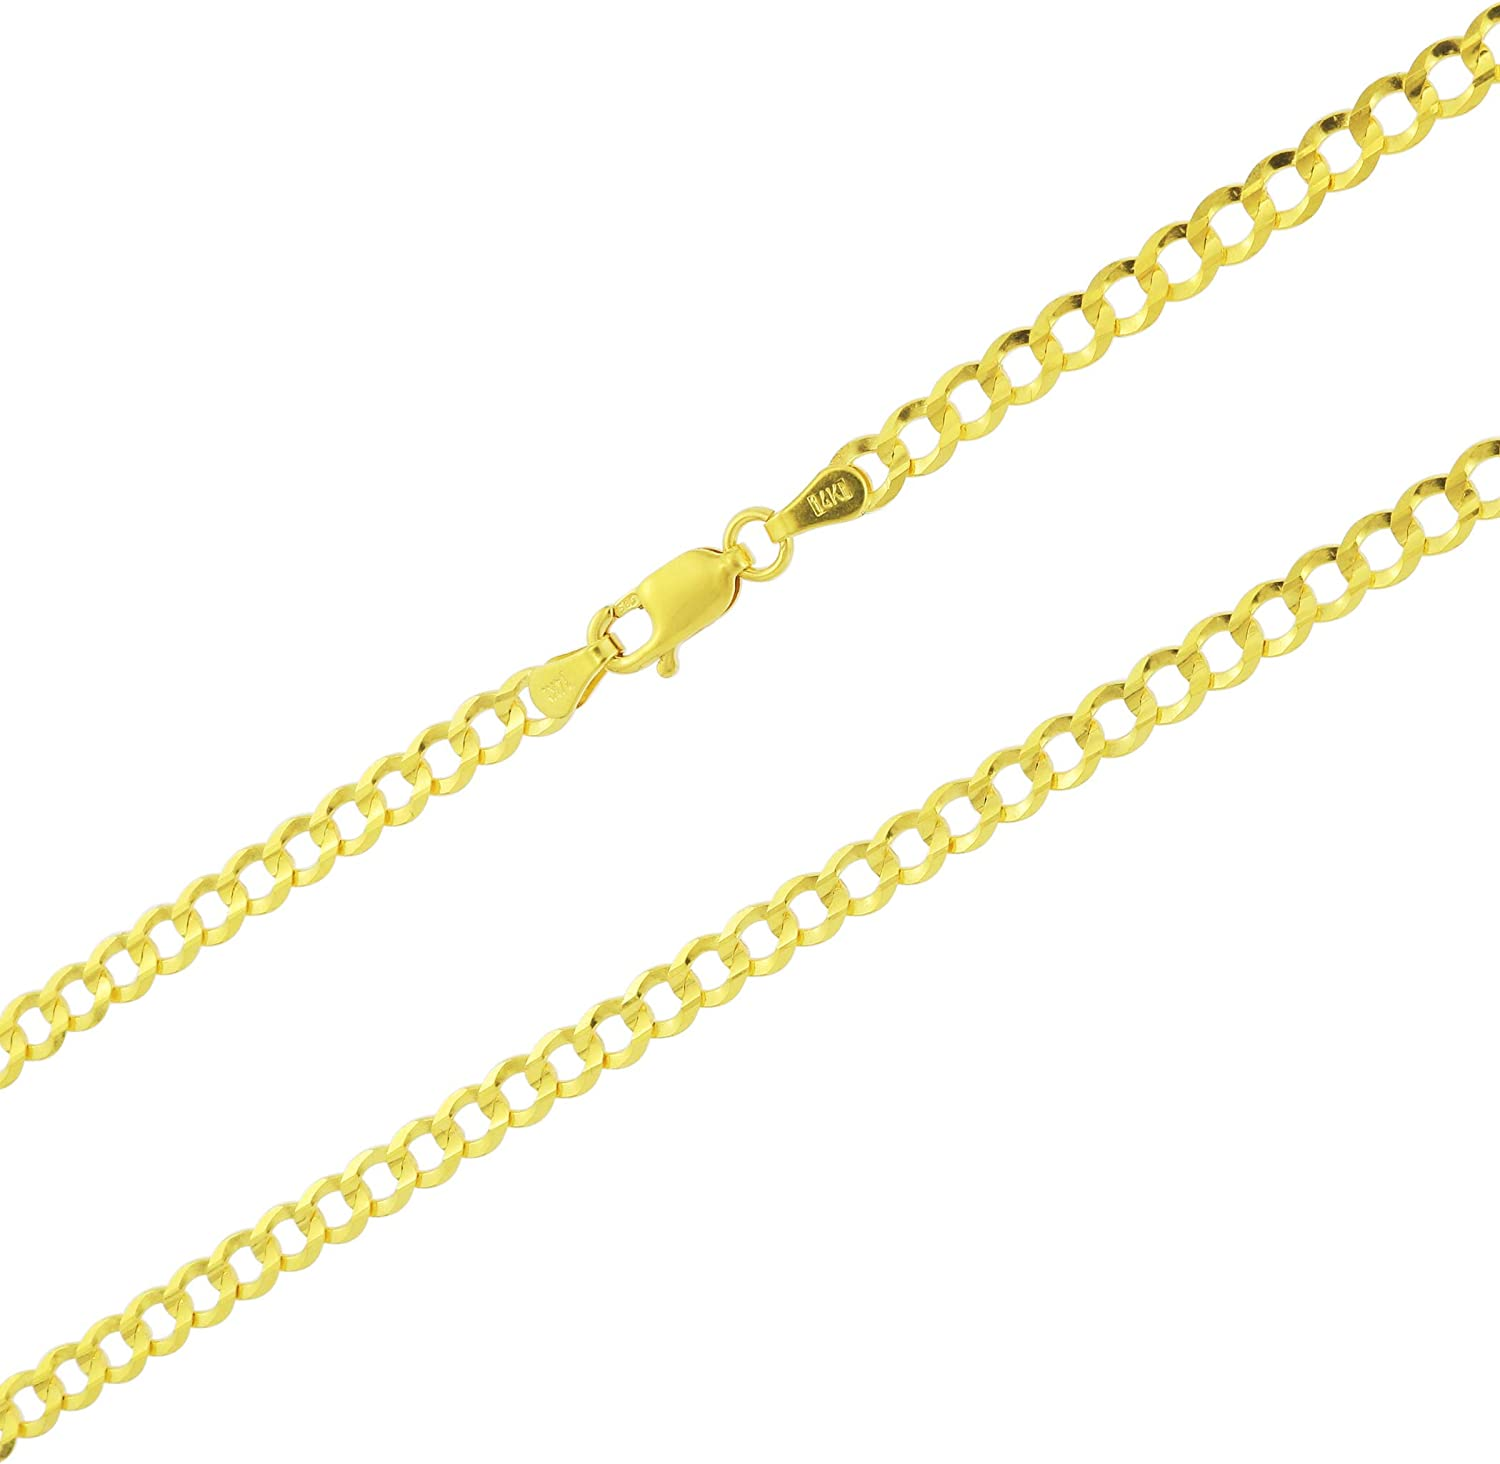 Nuragold 14k Yellow Gold 4mm Solid Cuban Curb Link Chain Pendant Necklace, Mens Womens Lobster Lock 16